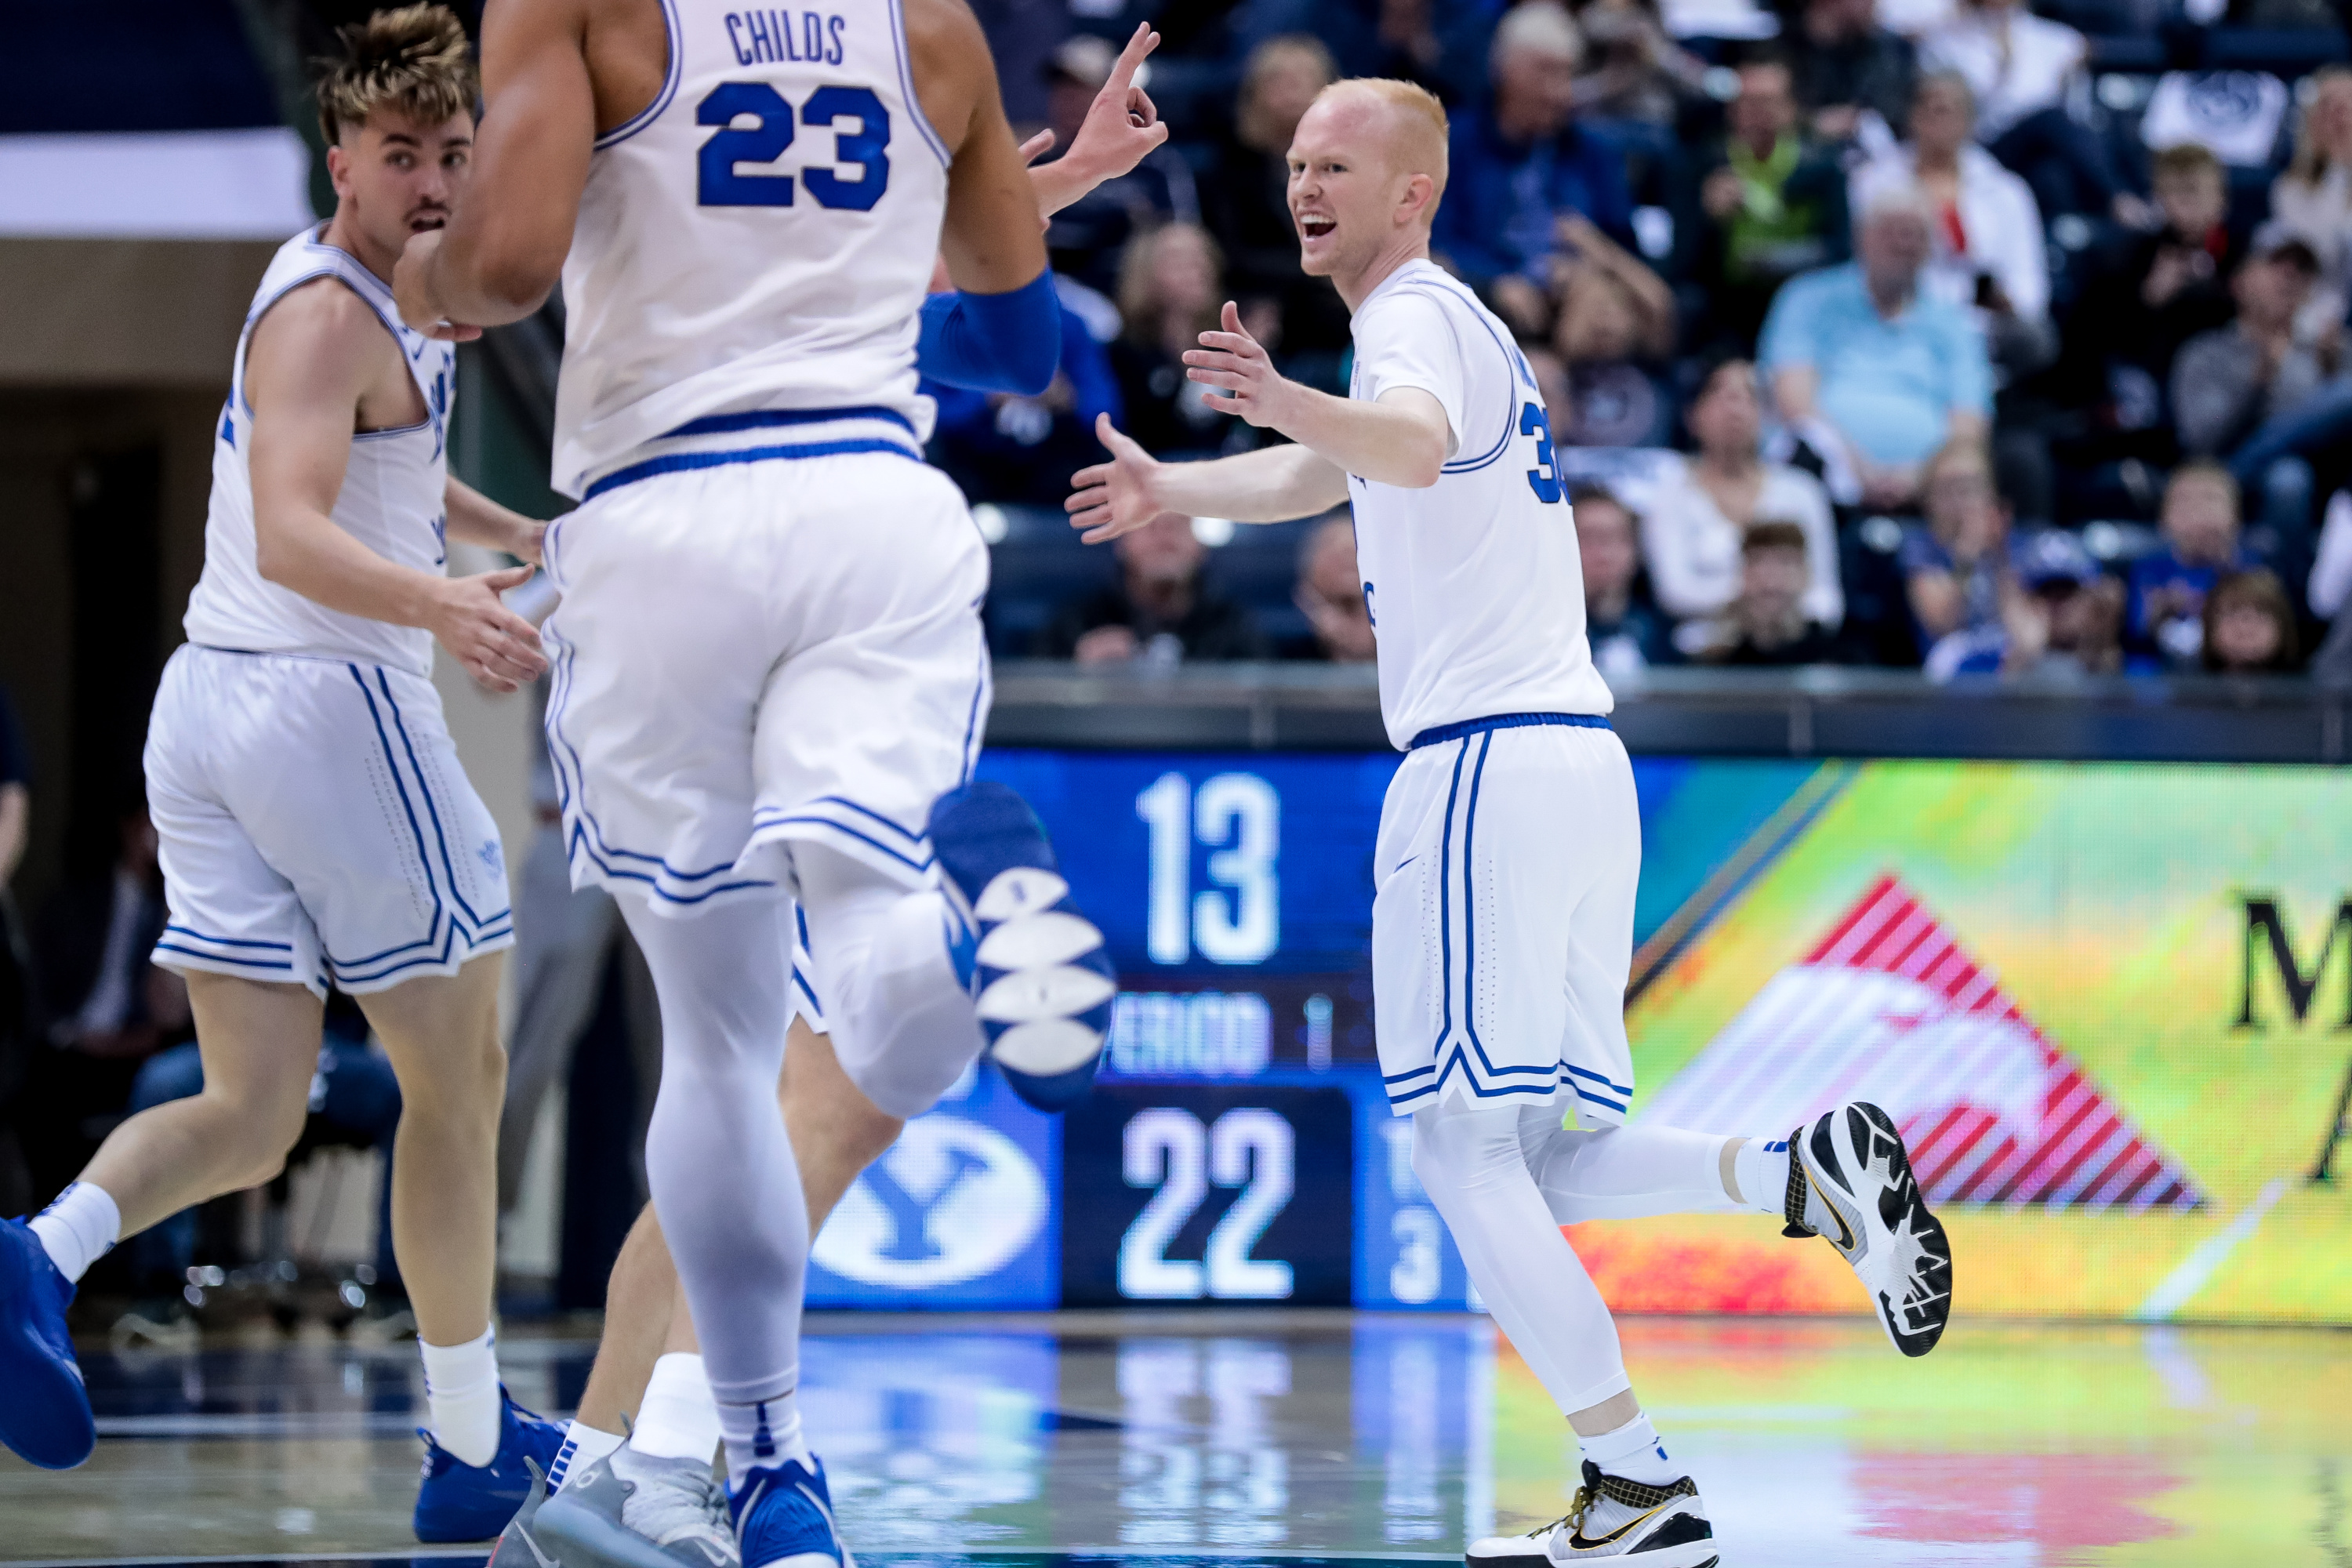 Brigham Young Cougars guard TJ Haws (30) celebrates after sinking a three during the game against the Nevada Wolf Pack at the Marriott Center in Provo on Tuesday, Dec. 10, 2019.